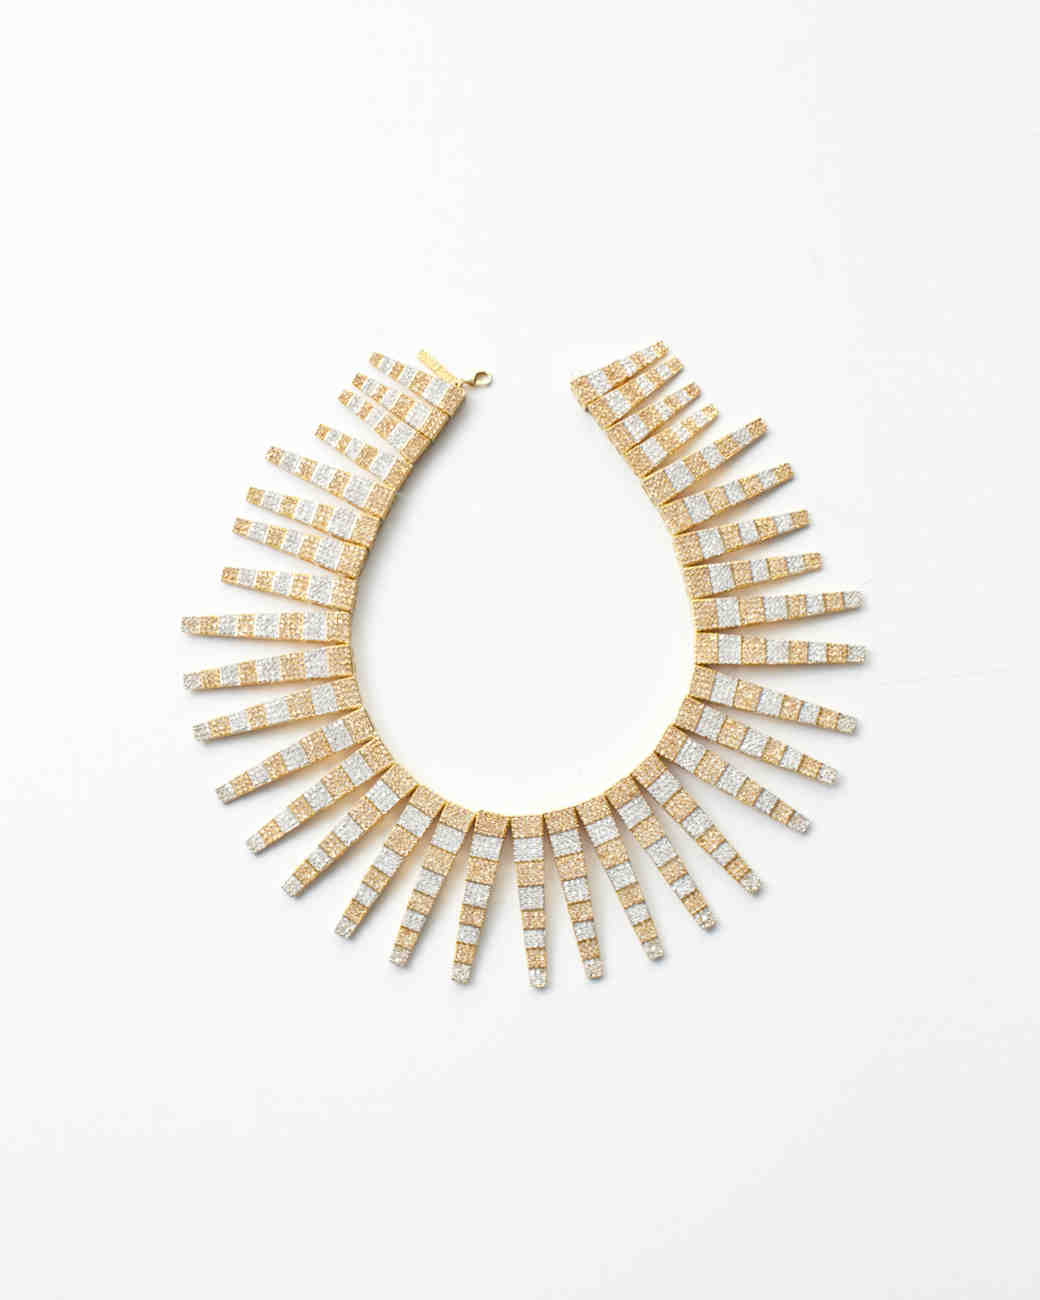 necklace-wd108931.jpg